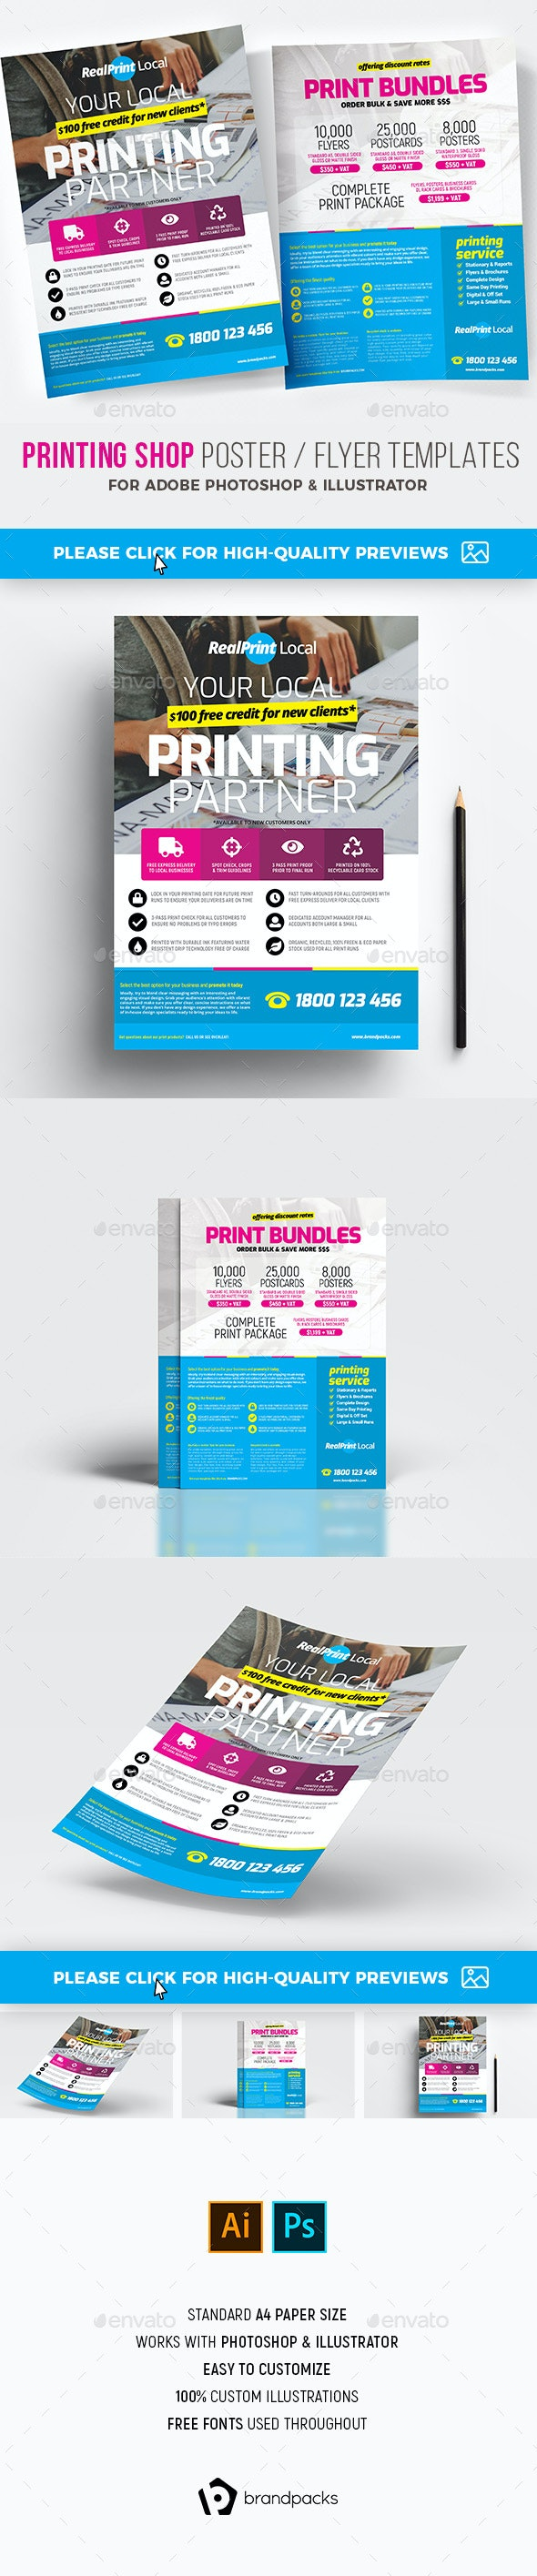 Print Shop Poster / Flyer - Commerce Flyers